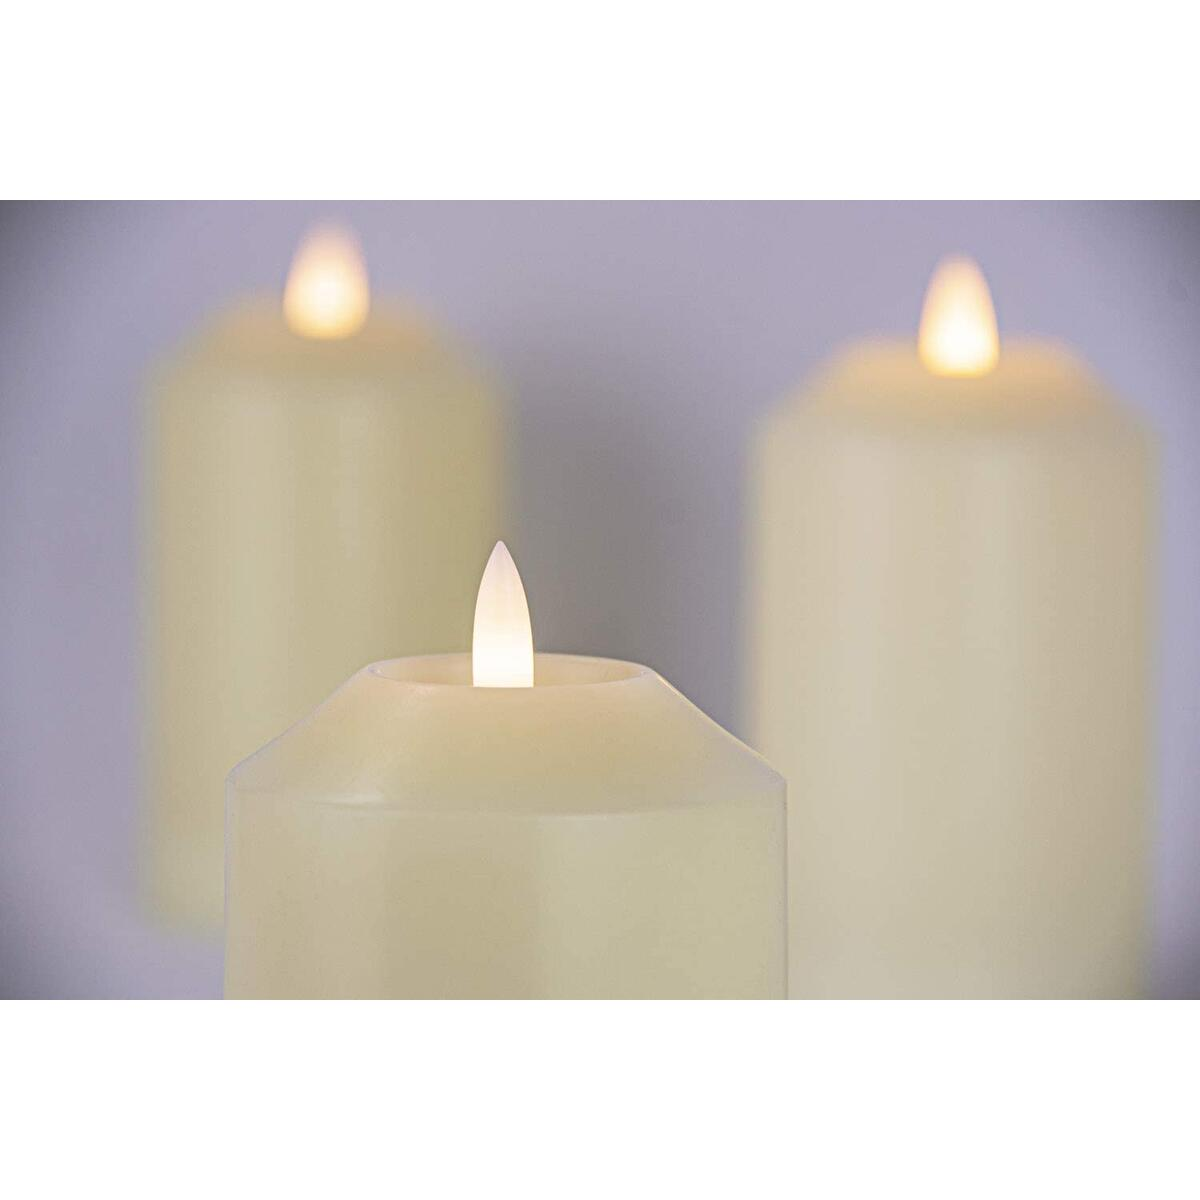 Flickering Vanilla Scented LED Candles with Timer (8 Hour). Set of 3 Ivory Night Light Pillar Candles.